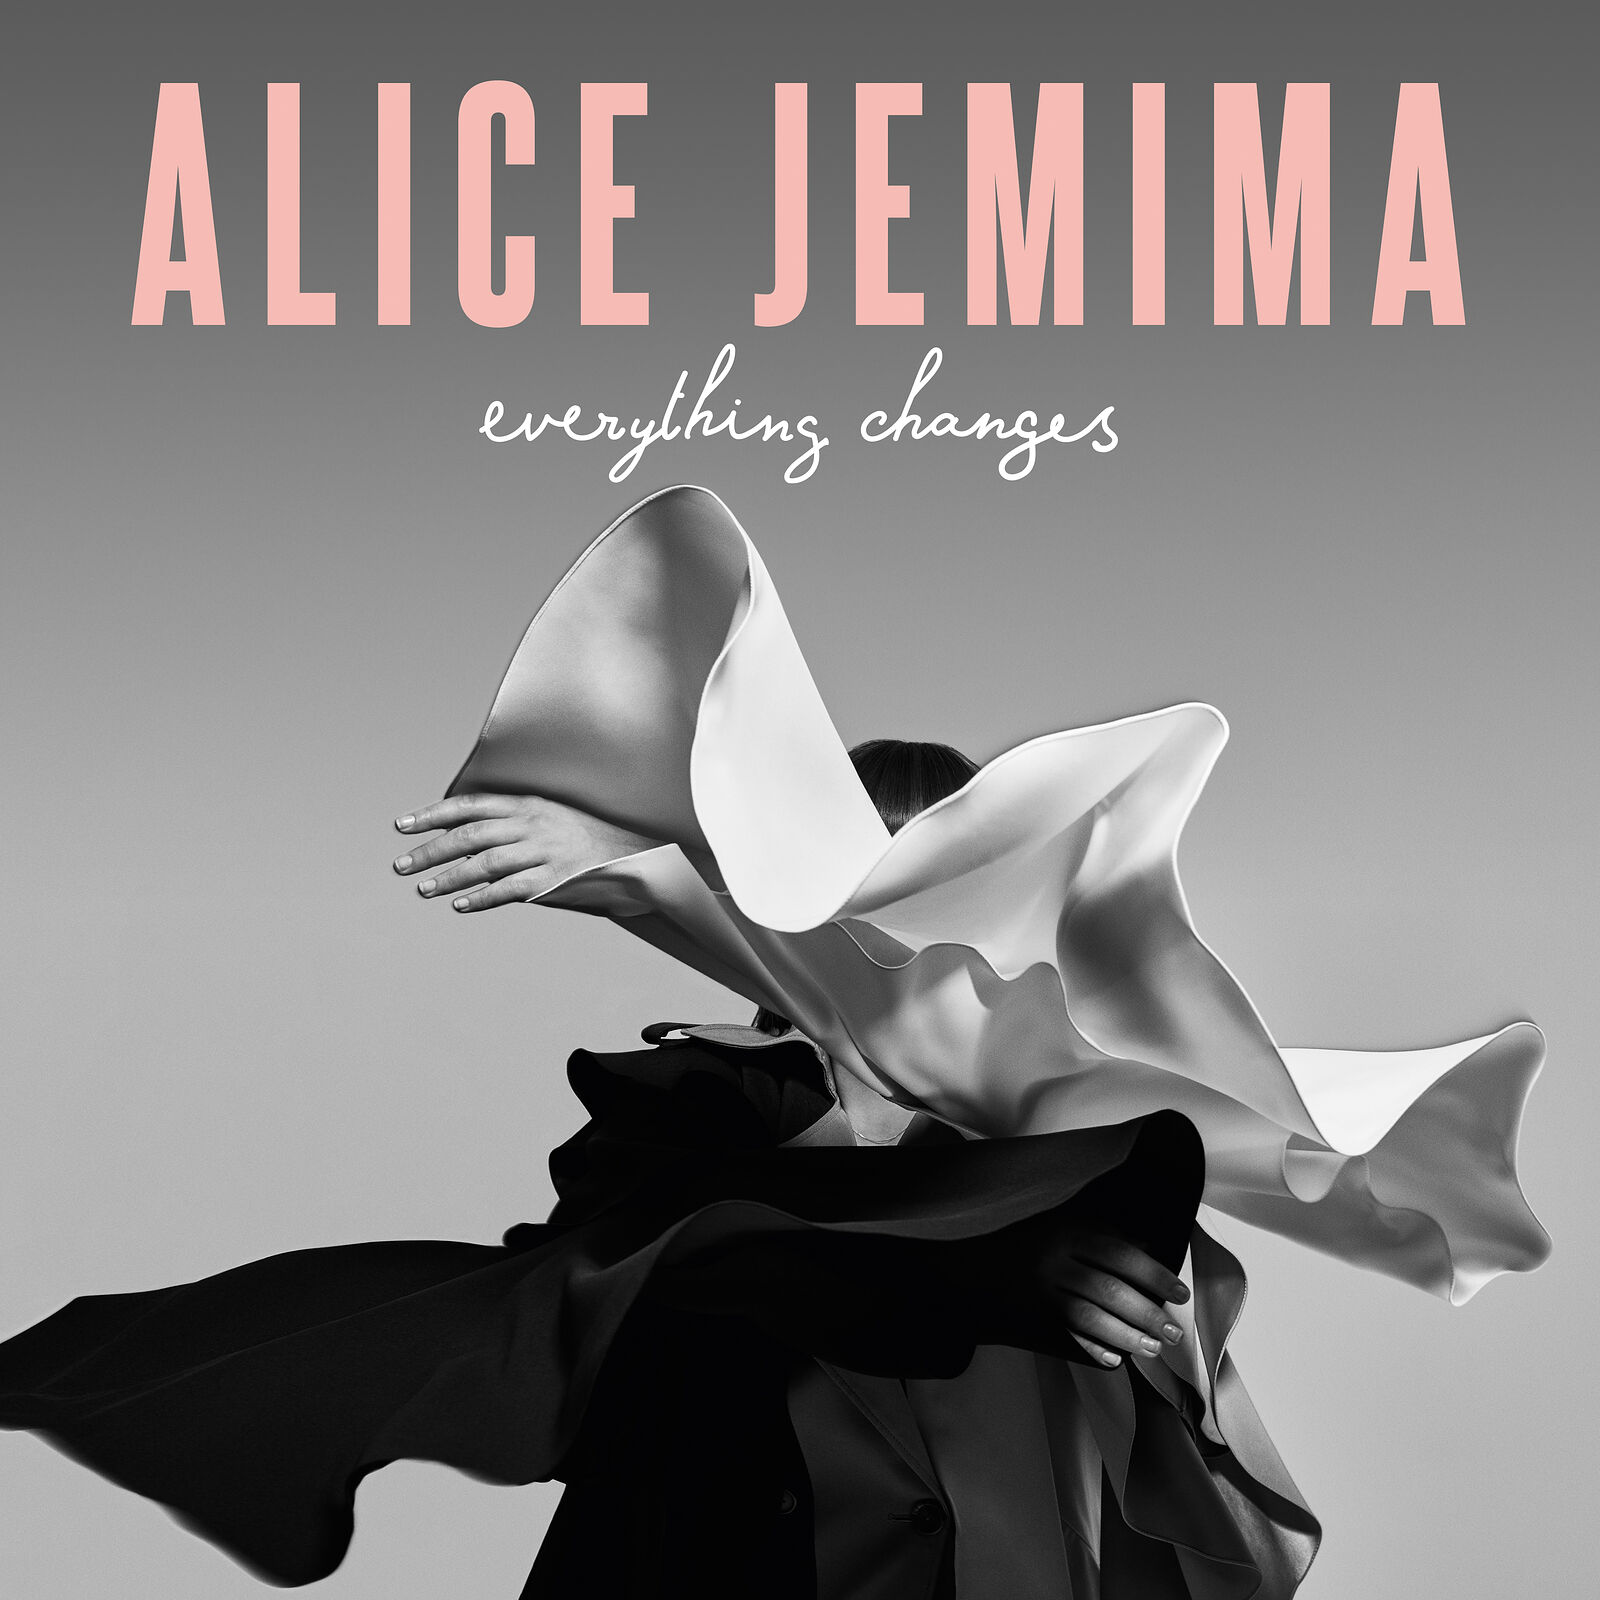 Alice Jemima: Everything Changes